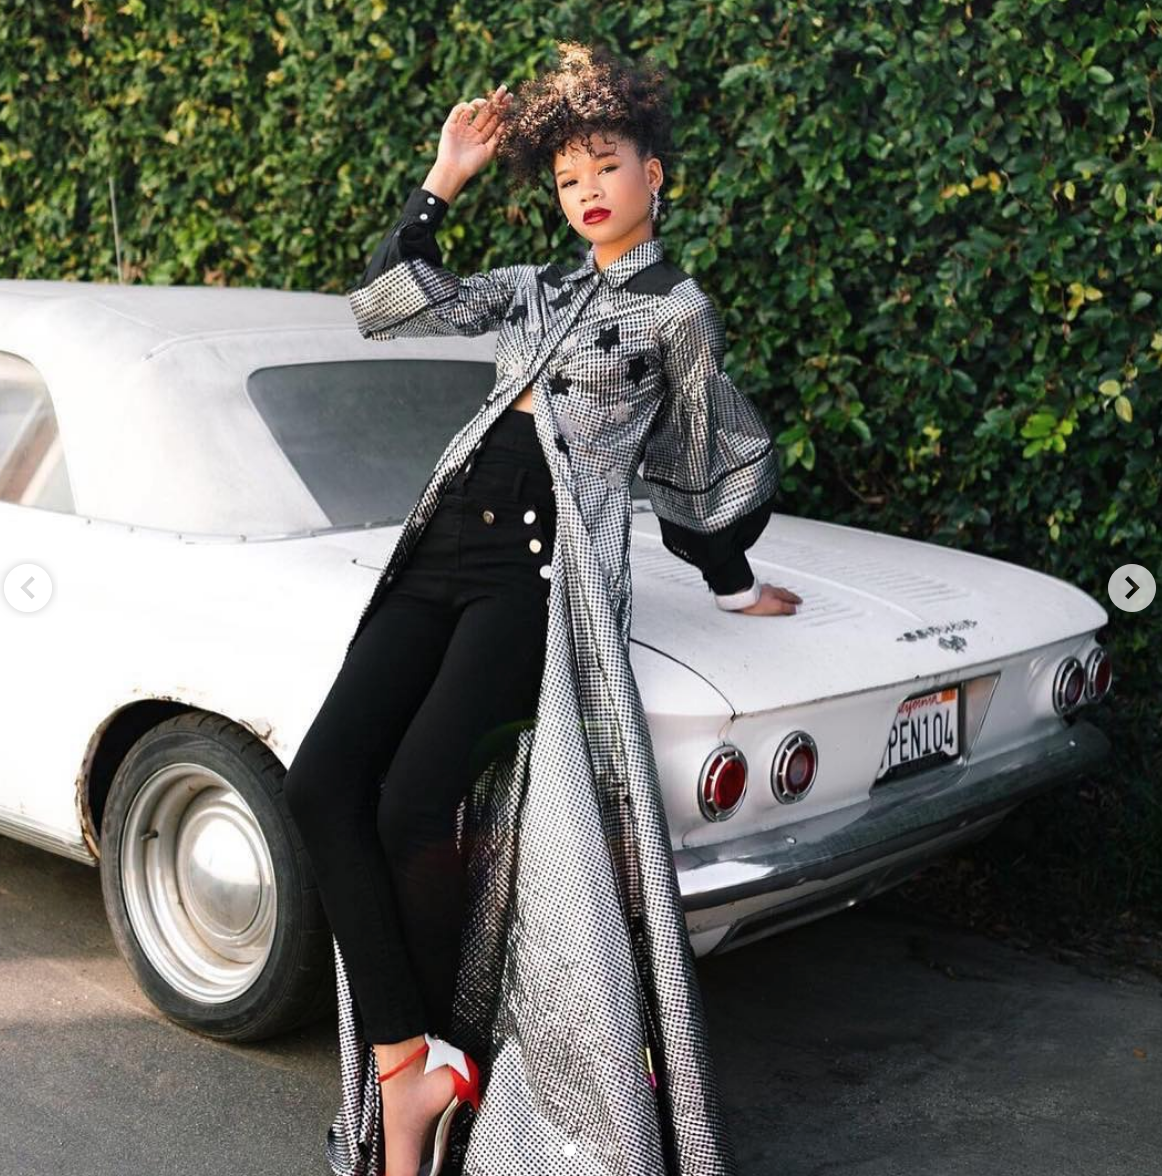 @oprah  's protégée Actress  @stormreid  looking fabulous on this  #bts  for an upcoming magazine editorial coming up soon wearing our designers  @sambacjewelry   @hayariparis styled by  @Angeltailan  fashion provided by  #ivanbittonstylehouse